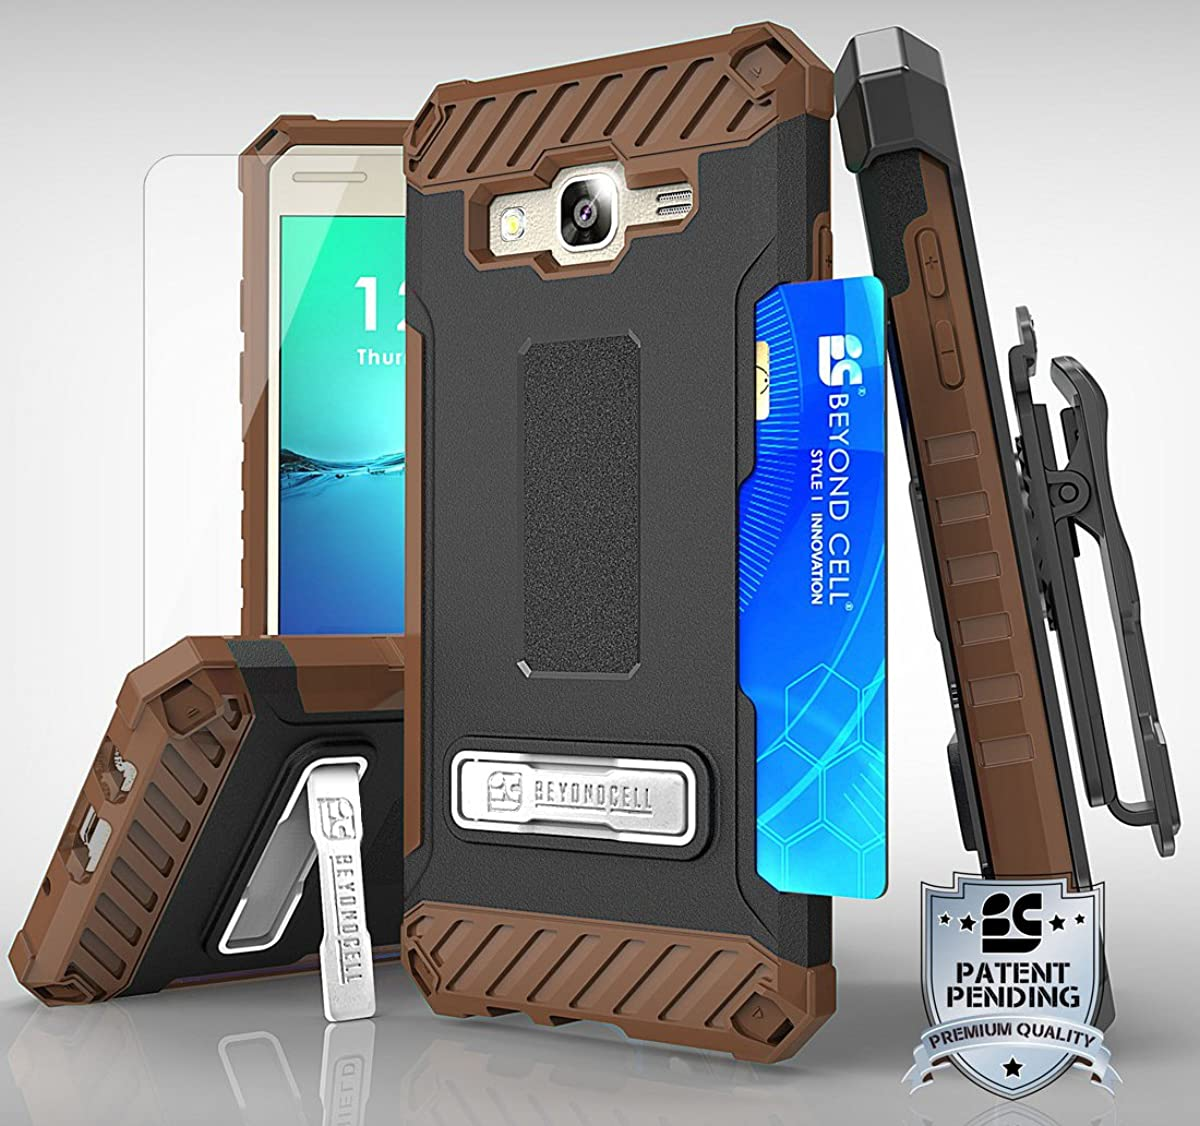 Galaxy On5 CASE Clip, Brown TRI-Shield Rugged Kickstand CASE + Tempered Glass + Belt Clip Holster + Lanyard Wrist Strap for Samsung Galaxy ON5 G550T G5500 (T-Mobile, MetroPCS, Unlocked)